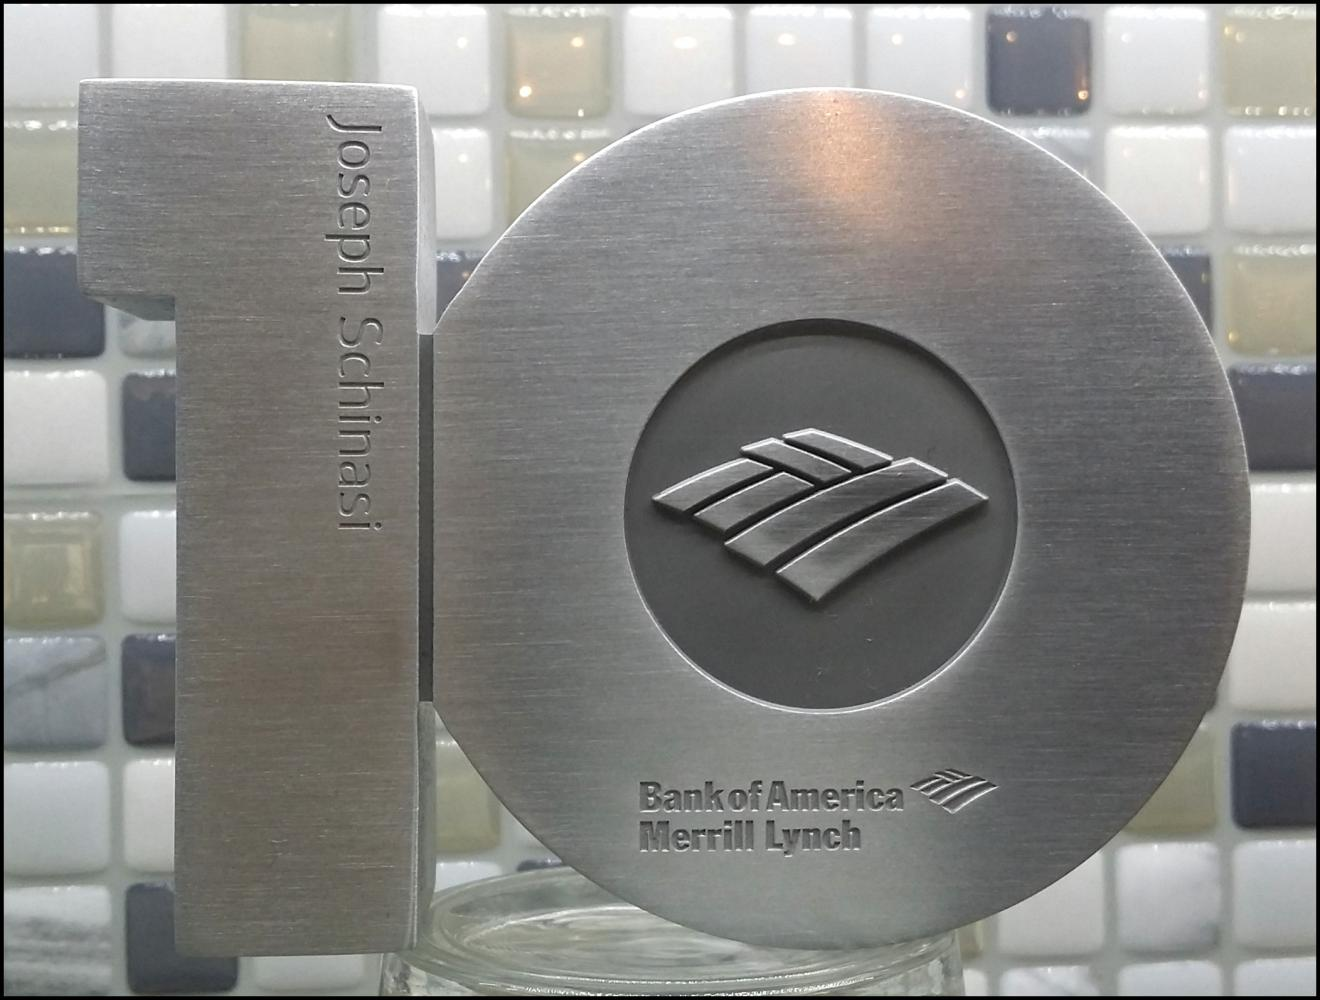 Bank of America - 10 Years of Services